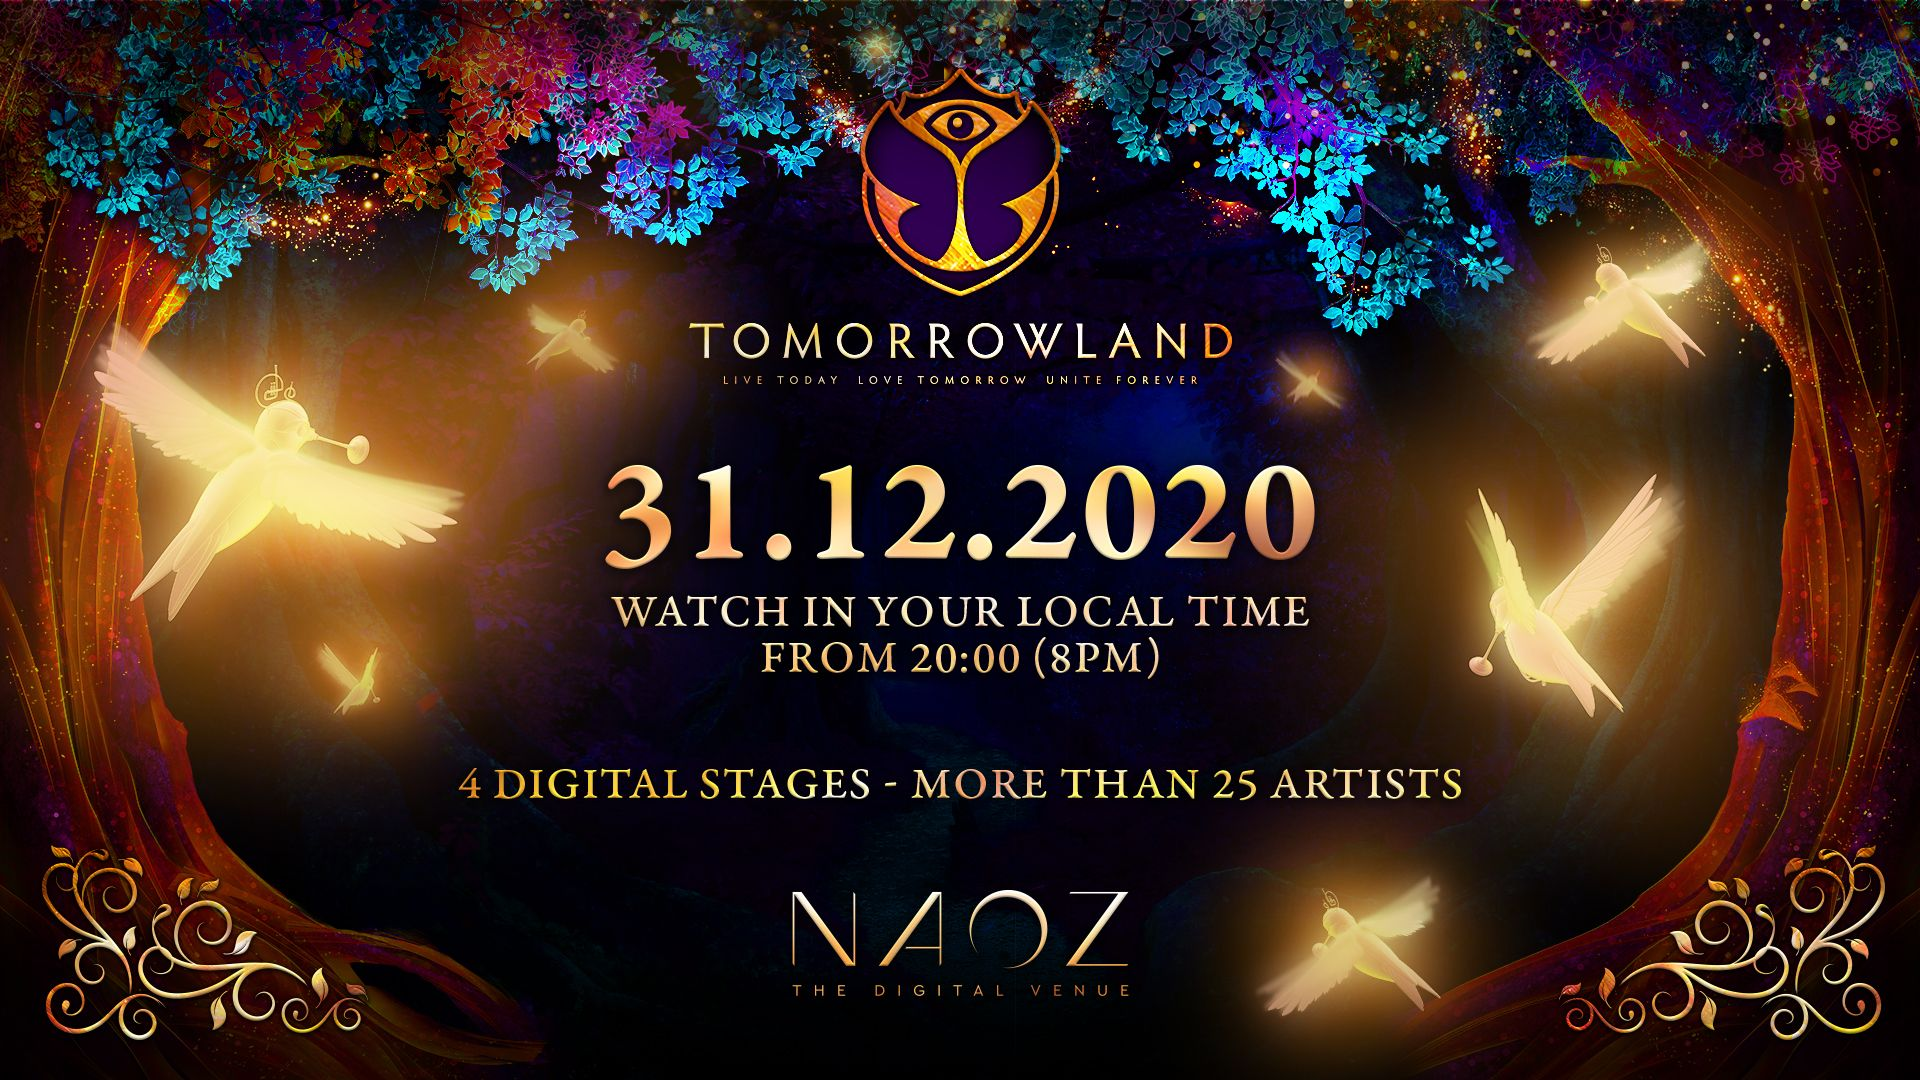 Tomorrowland nos regala un nuevo festival virtual por nochevieja